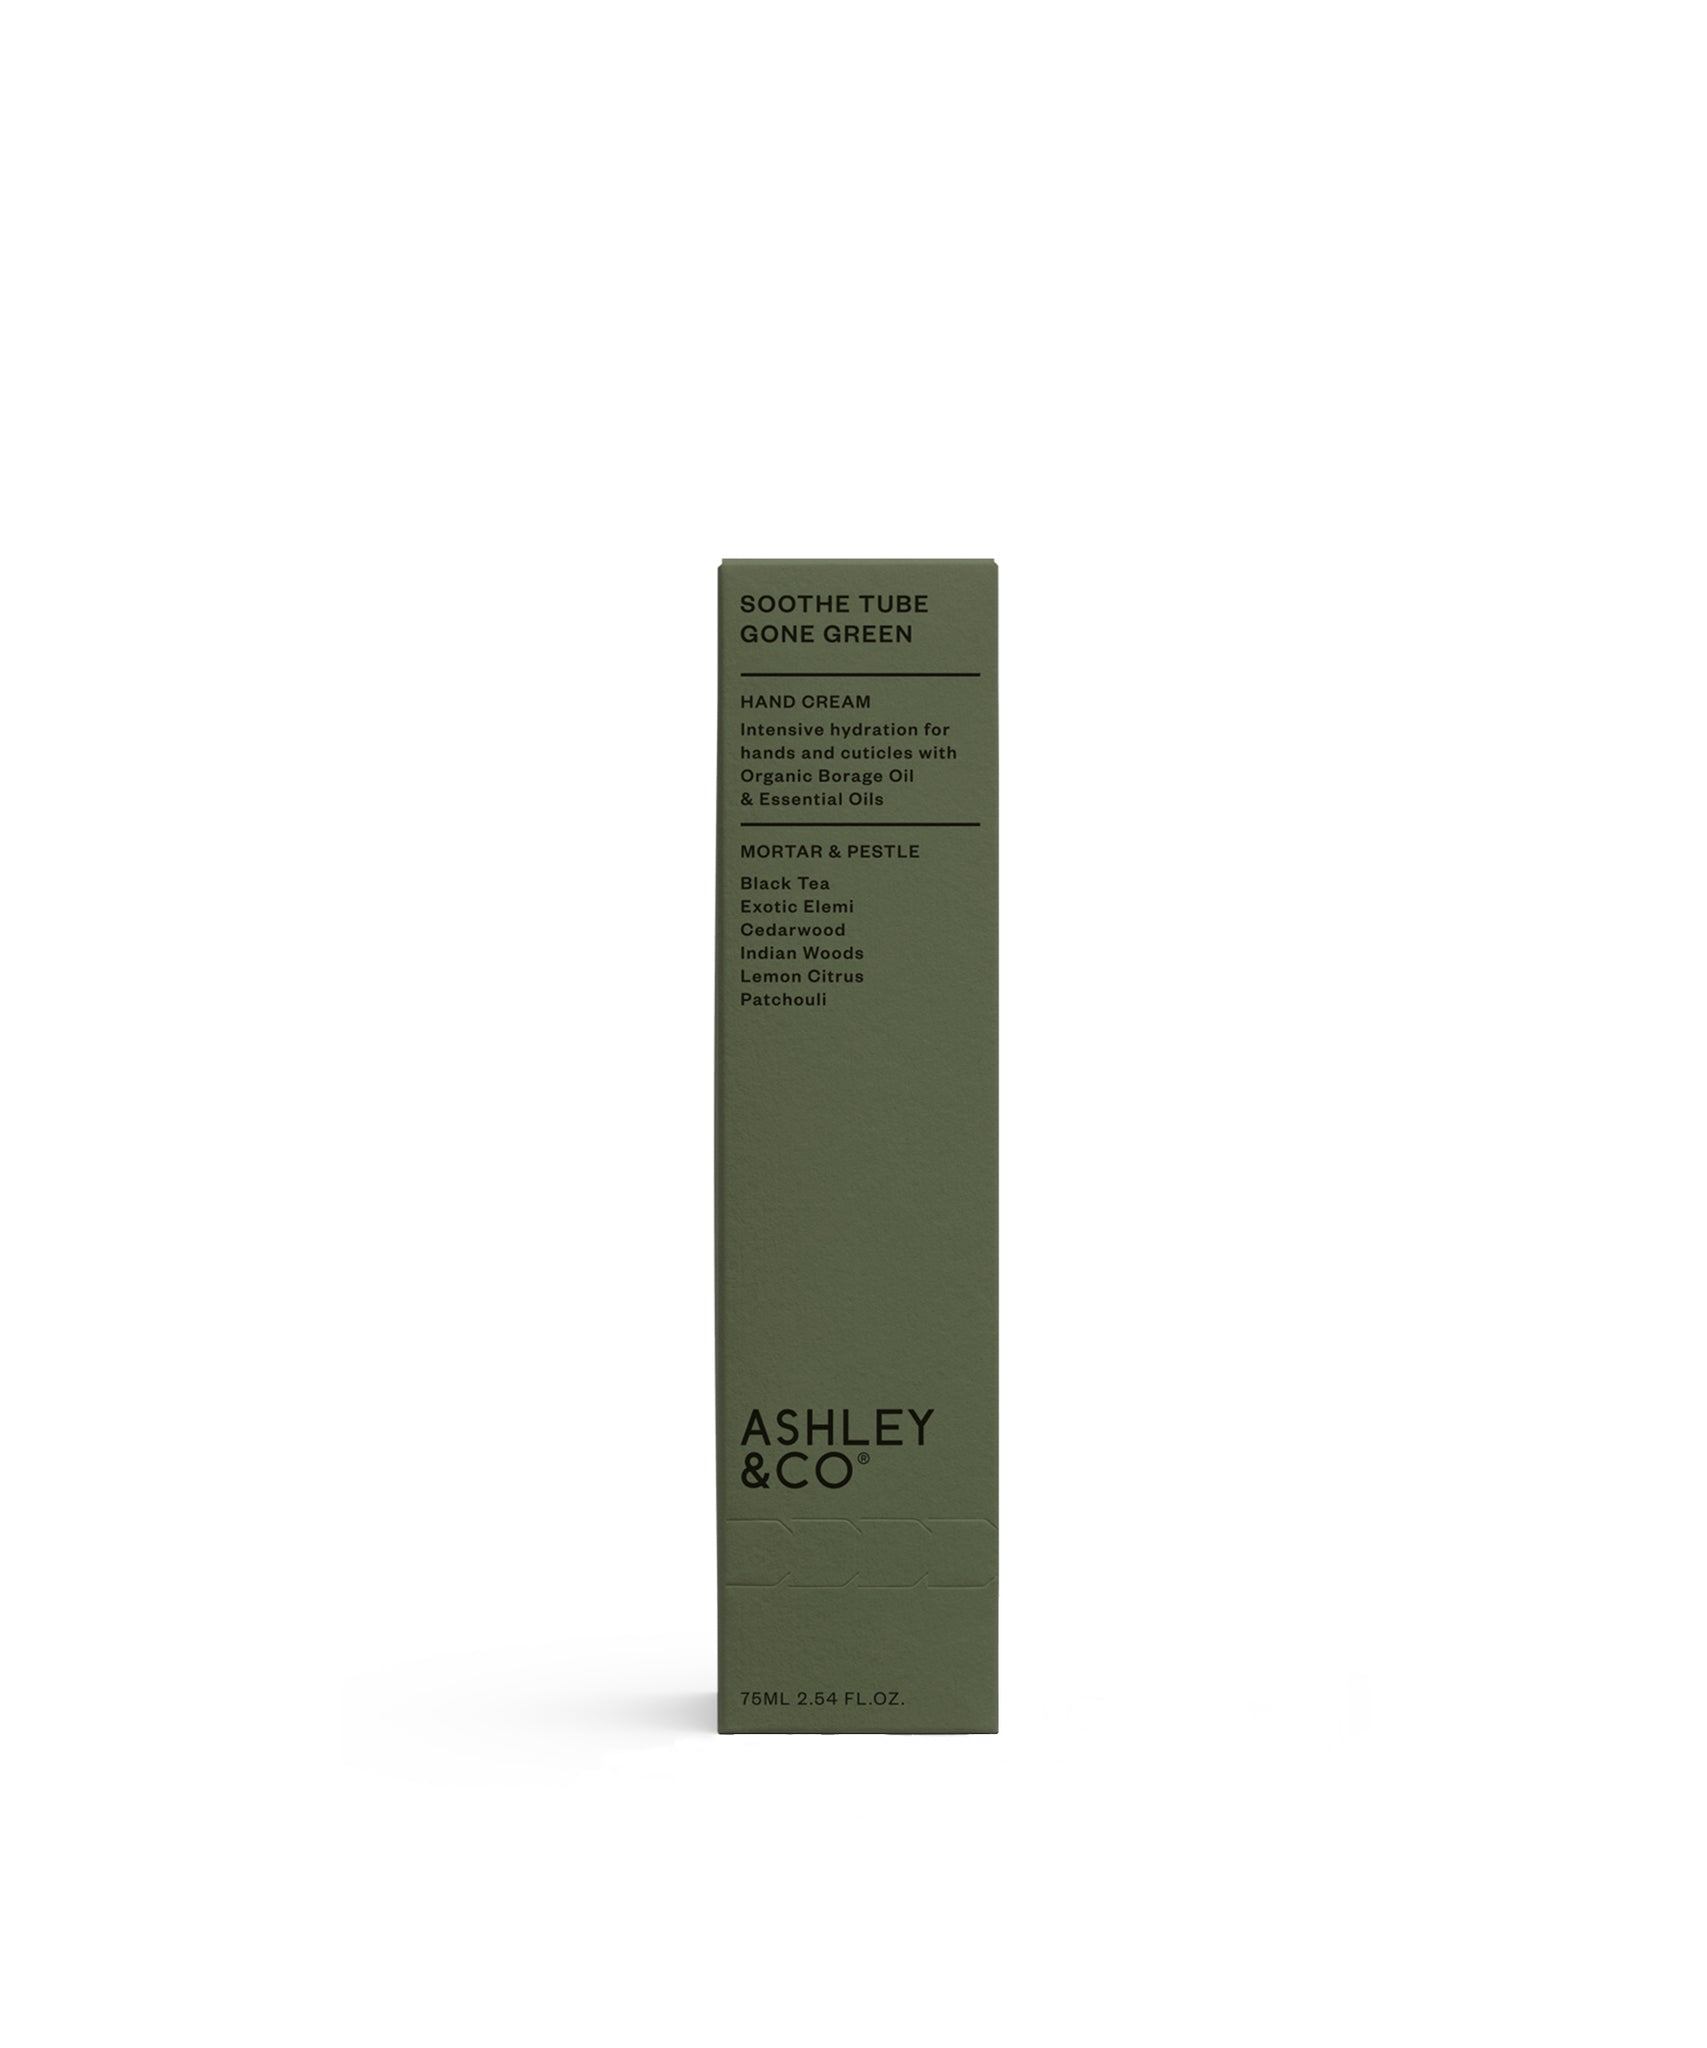 Mortar & Pestle Gone Green Soothe Tube by Ashley & Co.